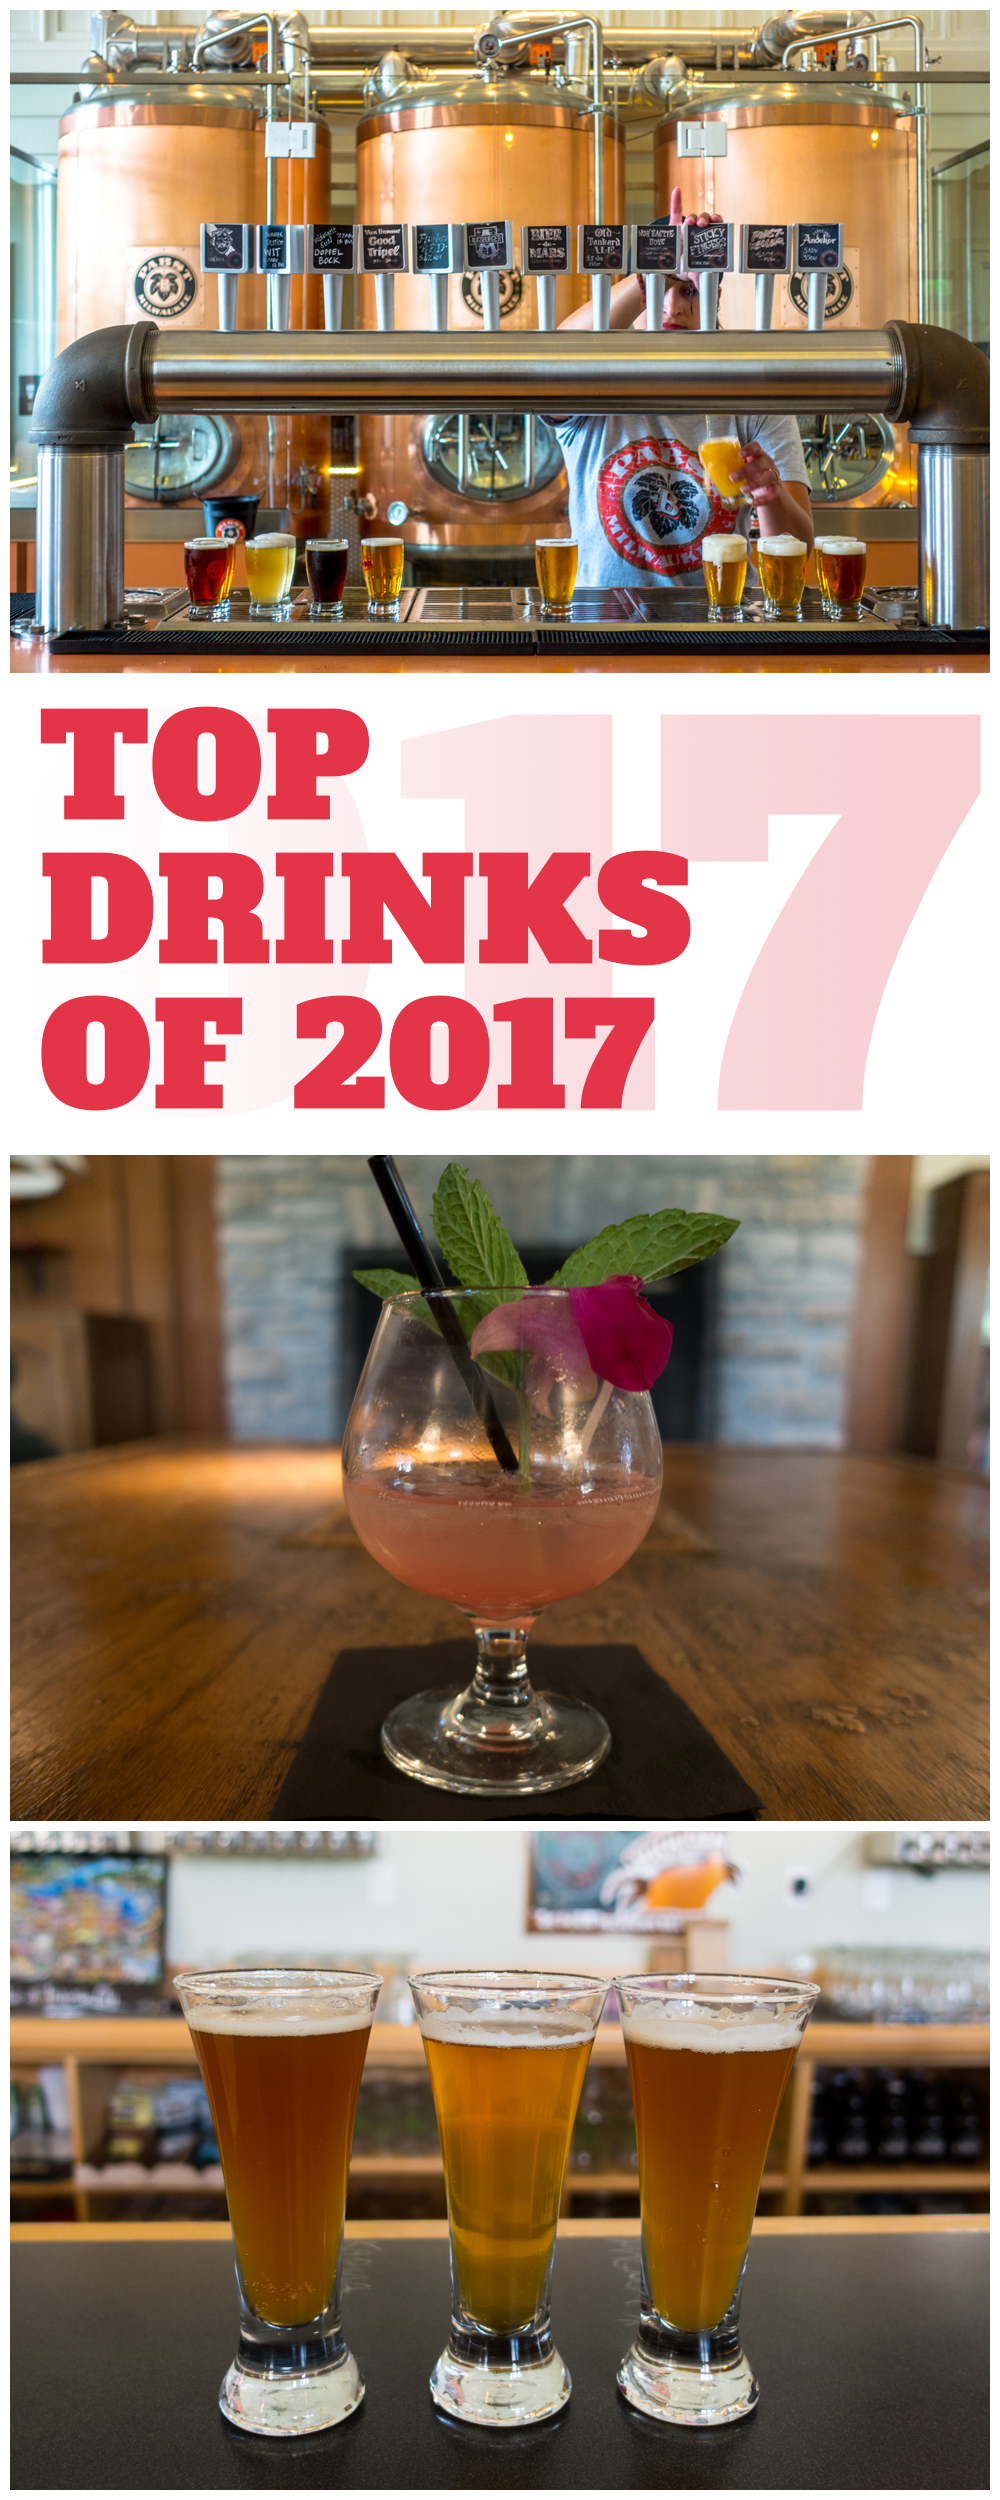 my Top Drinks of 2017! This year I had some incredible drinks. From craft beer to hand crafted cocktails, I tasted some of the best drinks. In this round-up, I am sharing my Top Drinks of 2017.